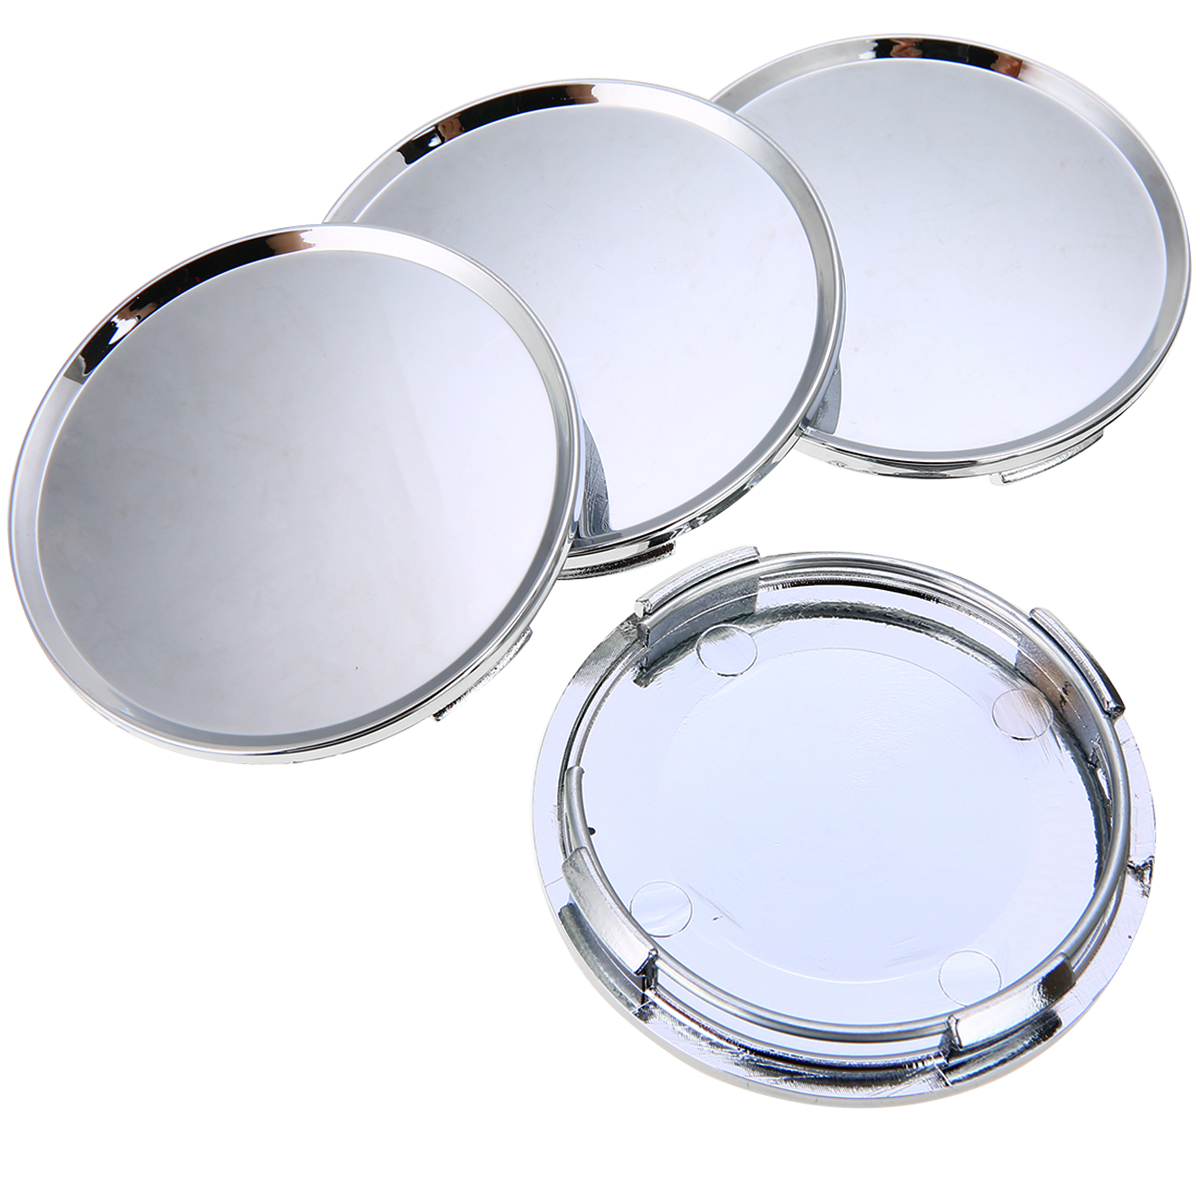 Image 2 - 4pcs/set Universal 63mm Car Vehicle Wheel Center Hub Cap Cover Silver For Most Car Trucks Vehicles-in Wheel Center Caps from Automobiles & Motorcycles